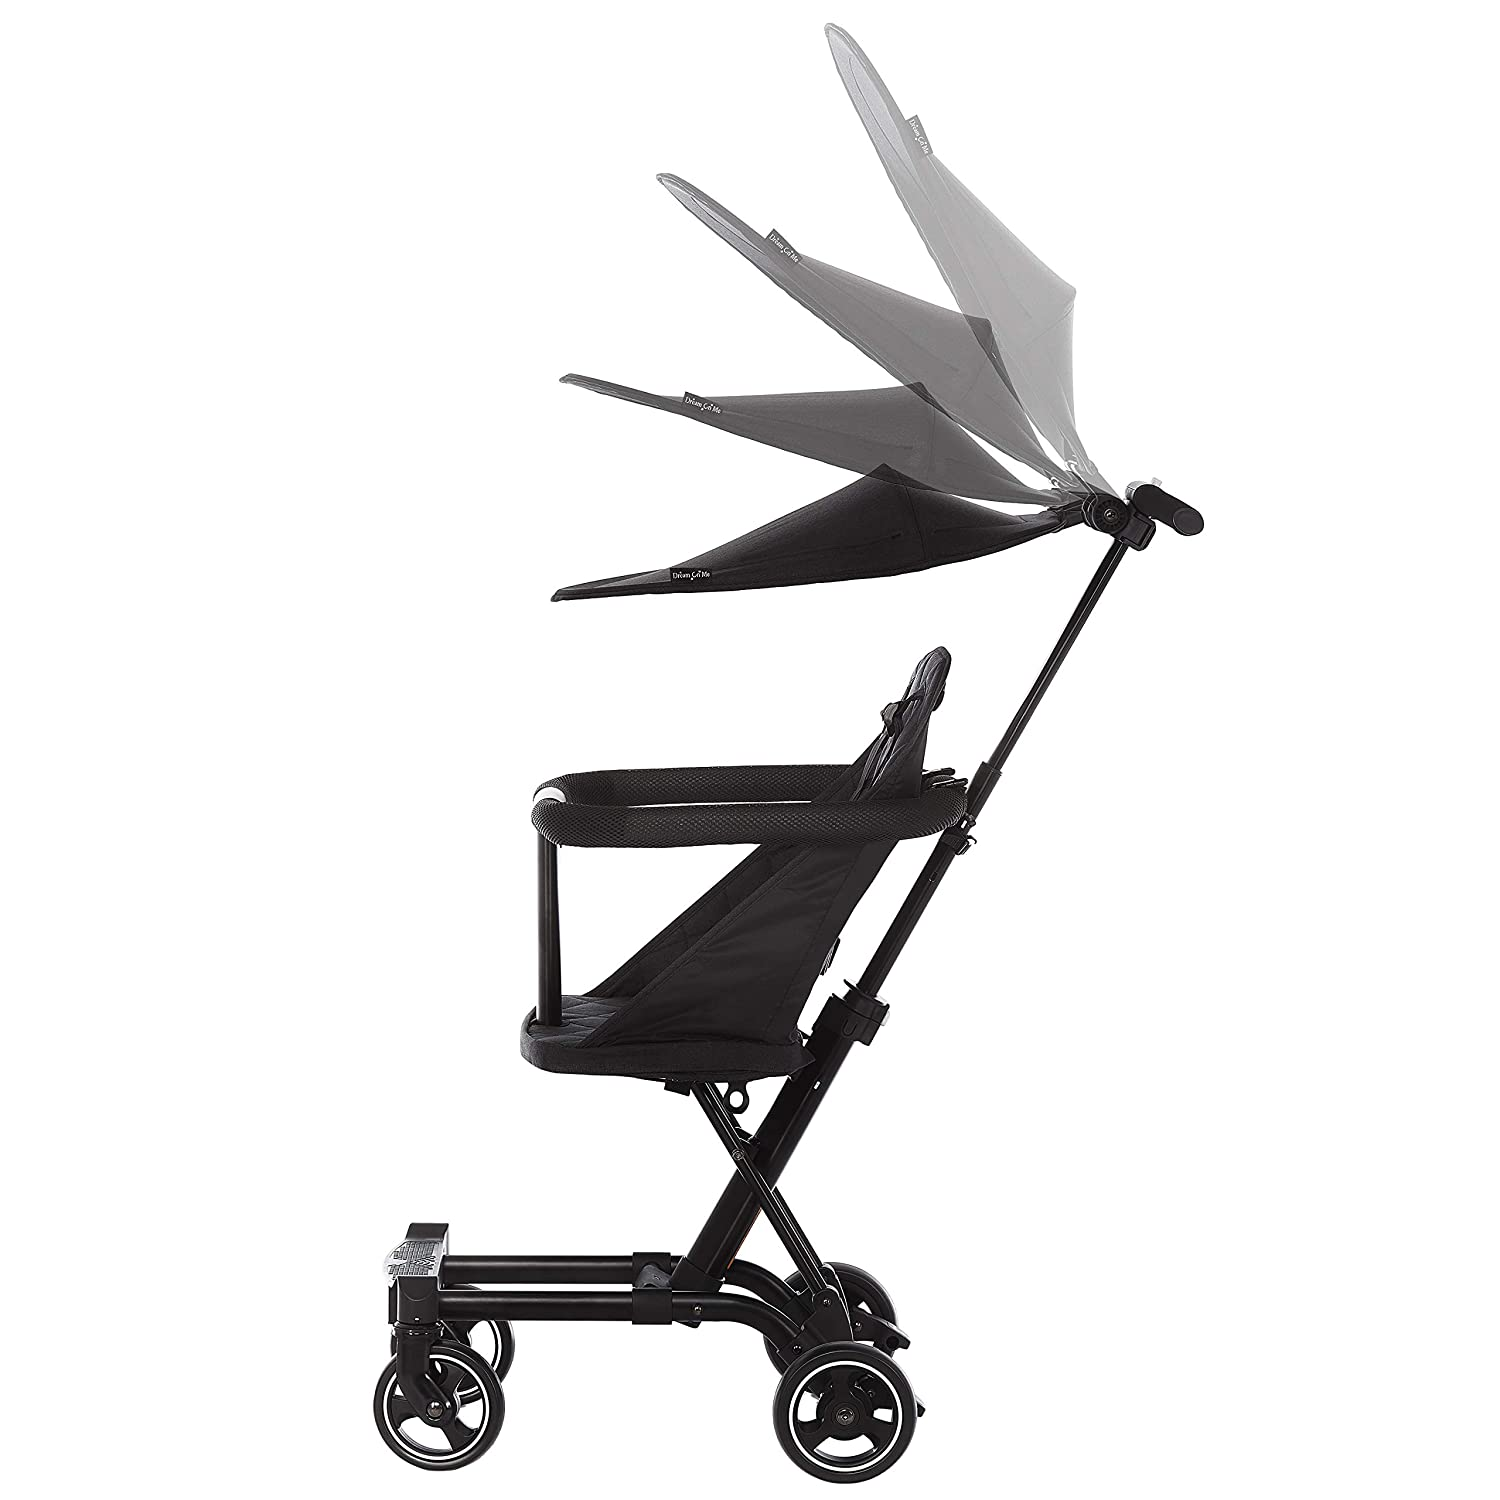 Dream On Me Coast Rider Travel Stroller Lightweight Stroller Compact Portable and Vacation Friendly Stroller, Black